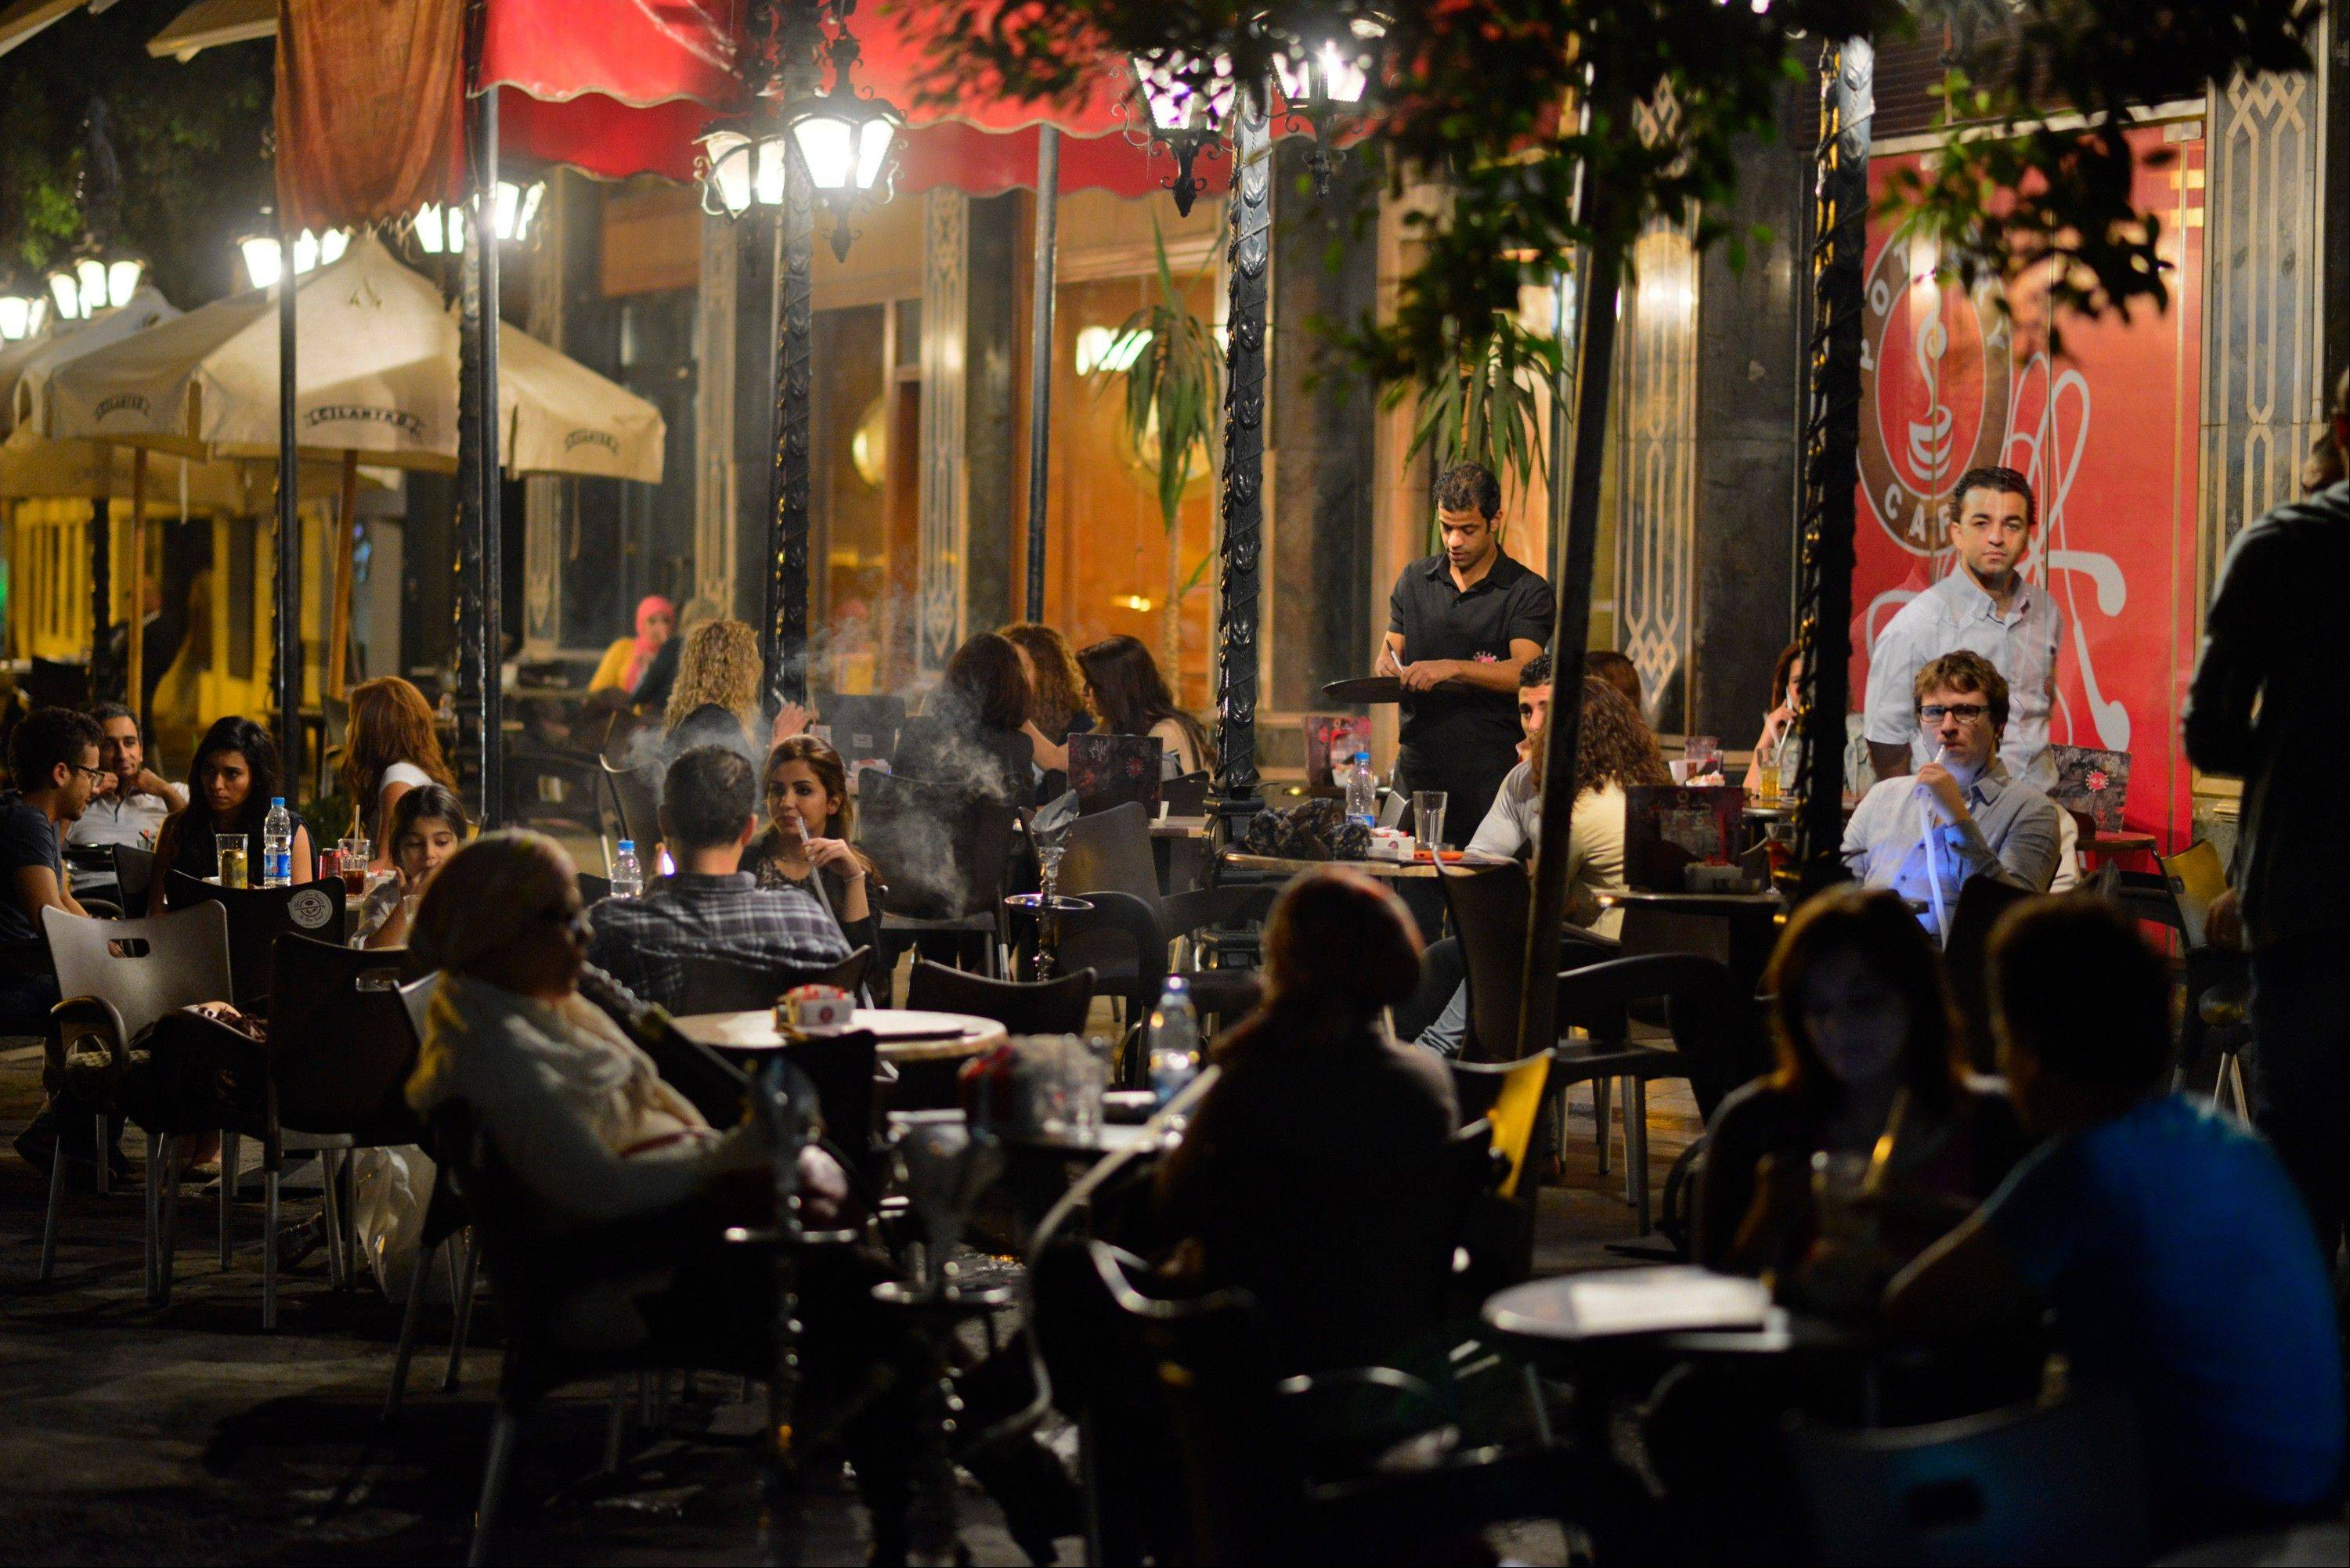 Egyptians relax outside a cafe in Cairo, Egypt Wednesday. Egypt's capital prides itself on being city that never sleeps, with crowds filling cafes and shops open into the small hours. So the government is facing a backlash from businesses and the public as it vows to impose new nationwide rules closing stores and restaurants early. Officials say the crisis-ridden nation has to conserve electricity, but they also seem intent on taming a population they see as too unruly.